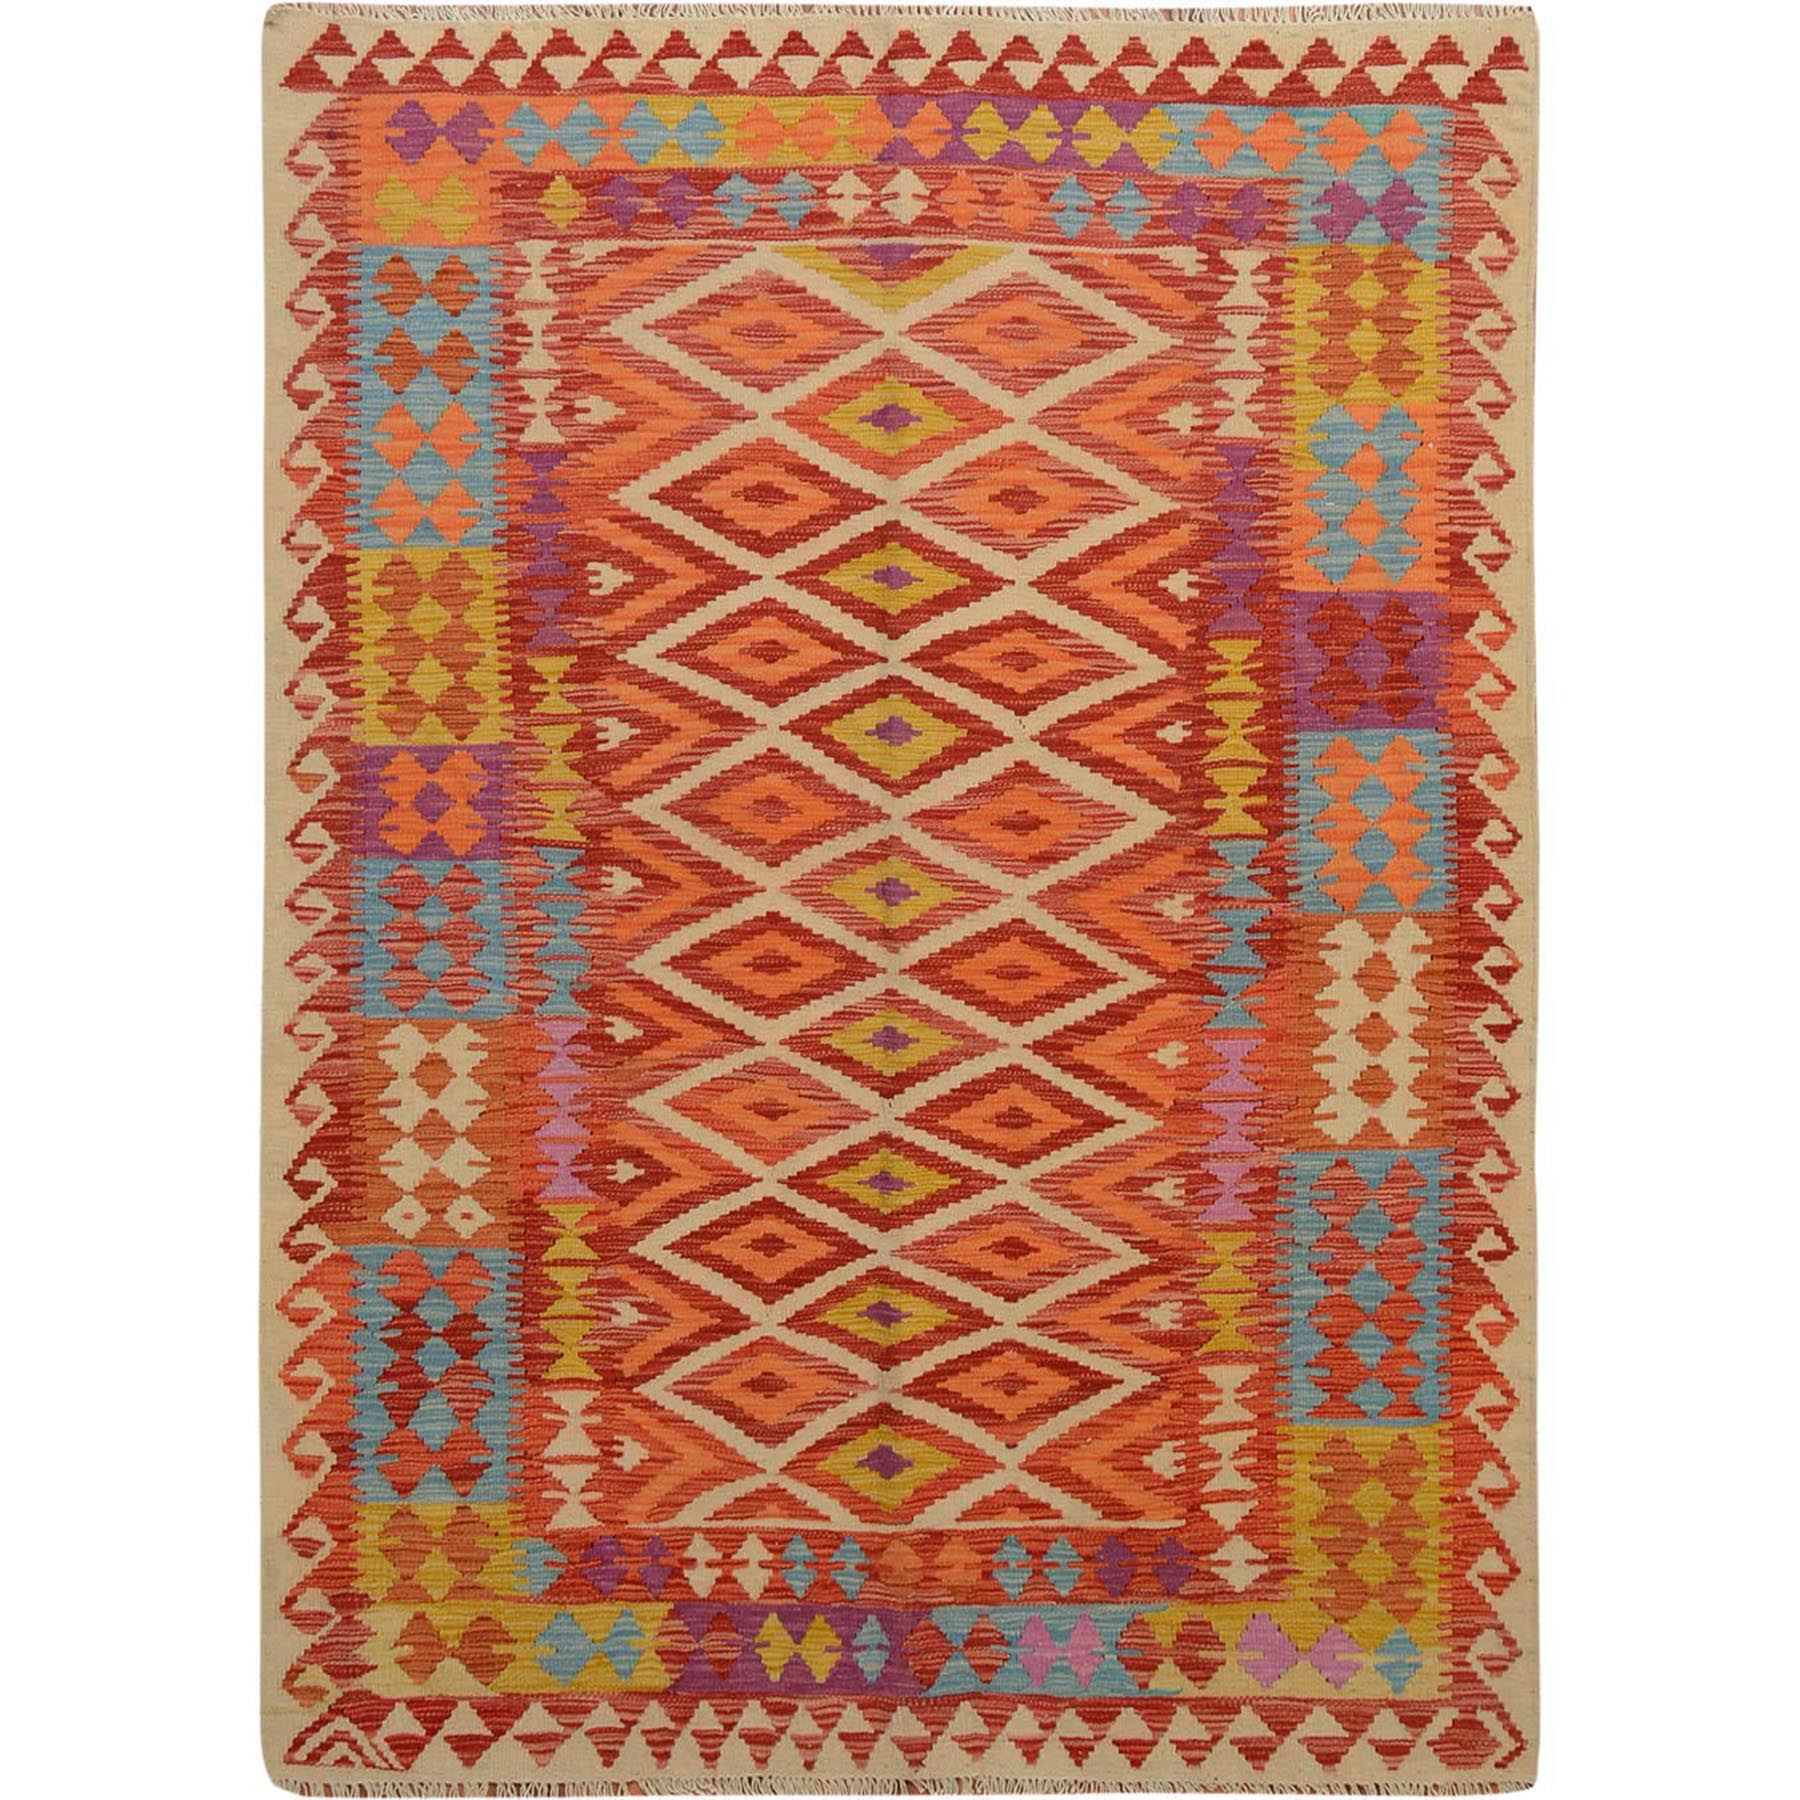 "4'10""x6'3"" Colorful Afghan Reversible Kilim Pure Wool Hand Woven Oriental Rug"